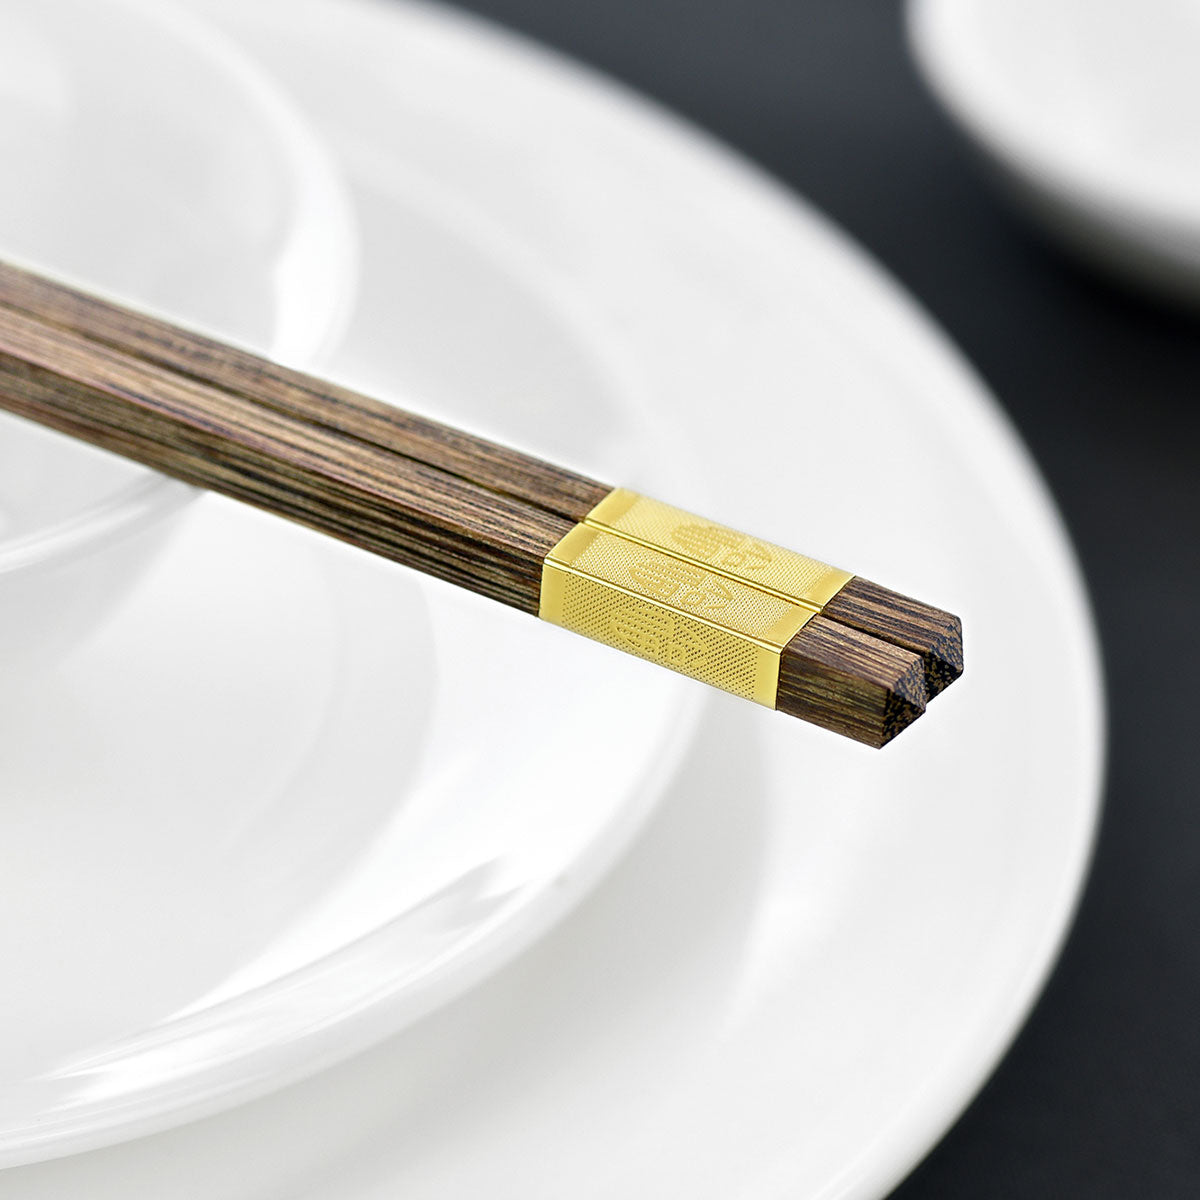 "10 Pairs Natural Solid Wenge Wood with Golden Chinese Character Golden ""Fu"" Wooden Chopsticks Collection Chinese Japanese Korean Chopsticks Oriental Chop Sticks Mildew Resistant, for Chinese Food, Sushi, Teppanyaki"